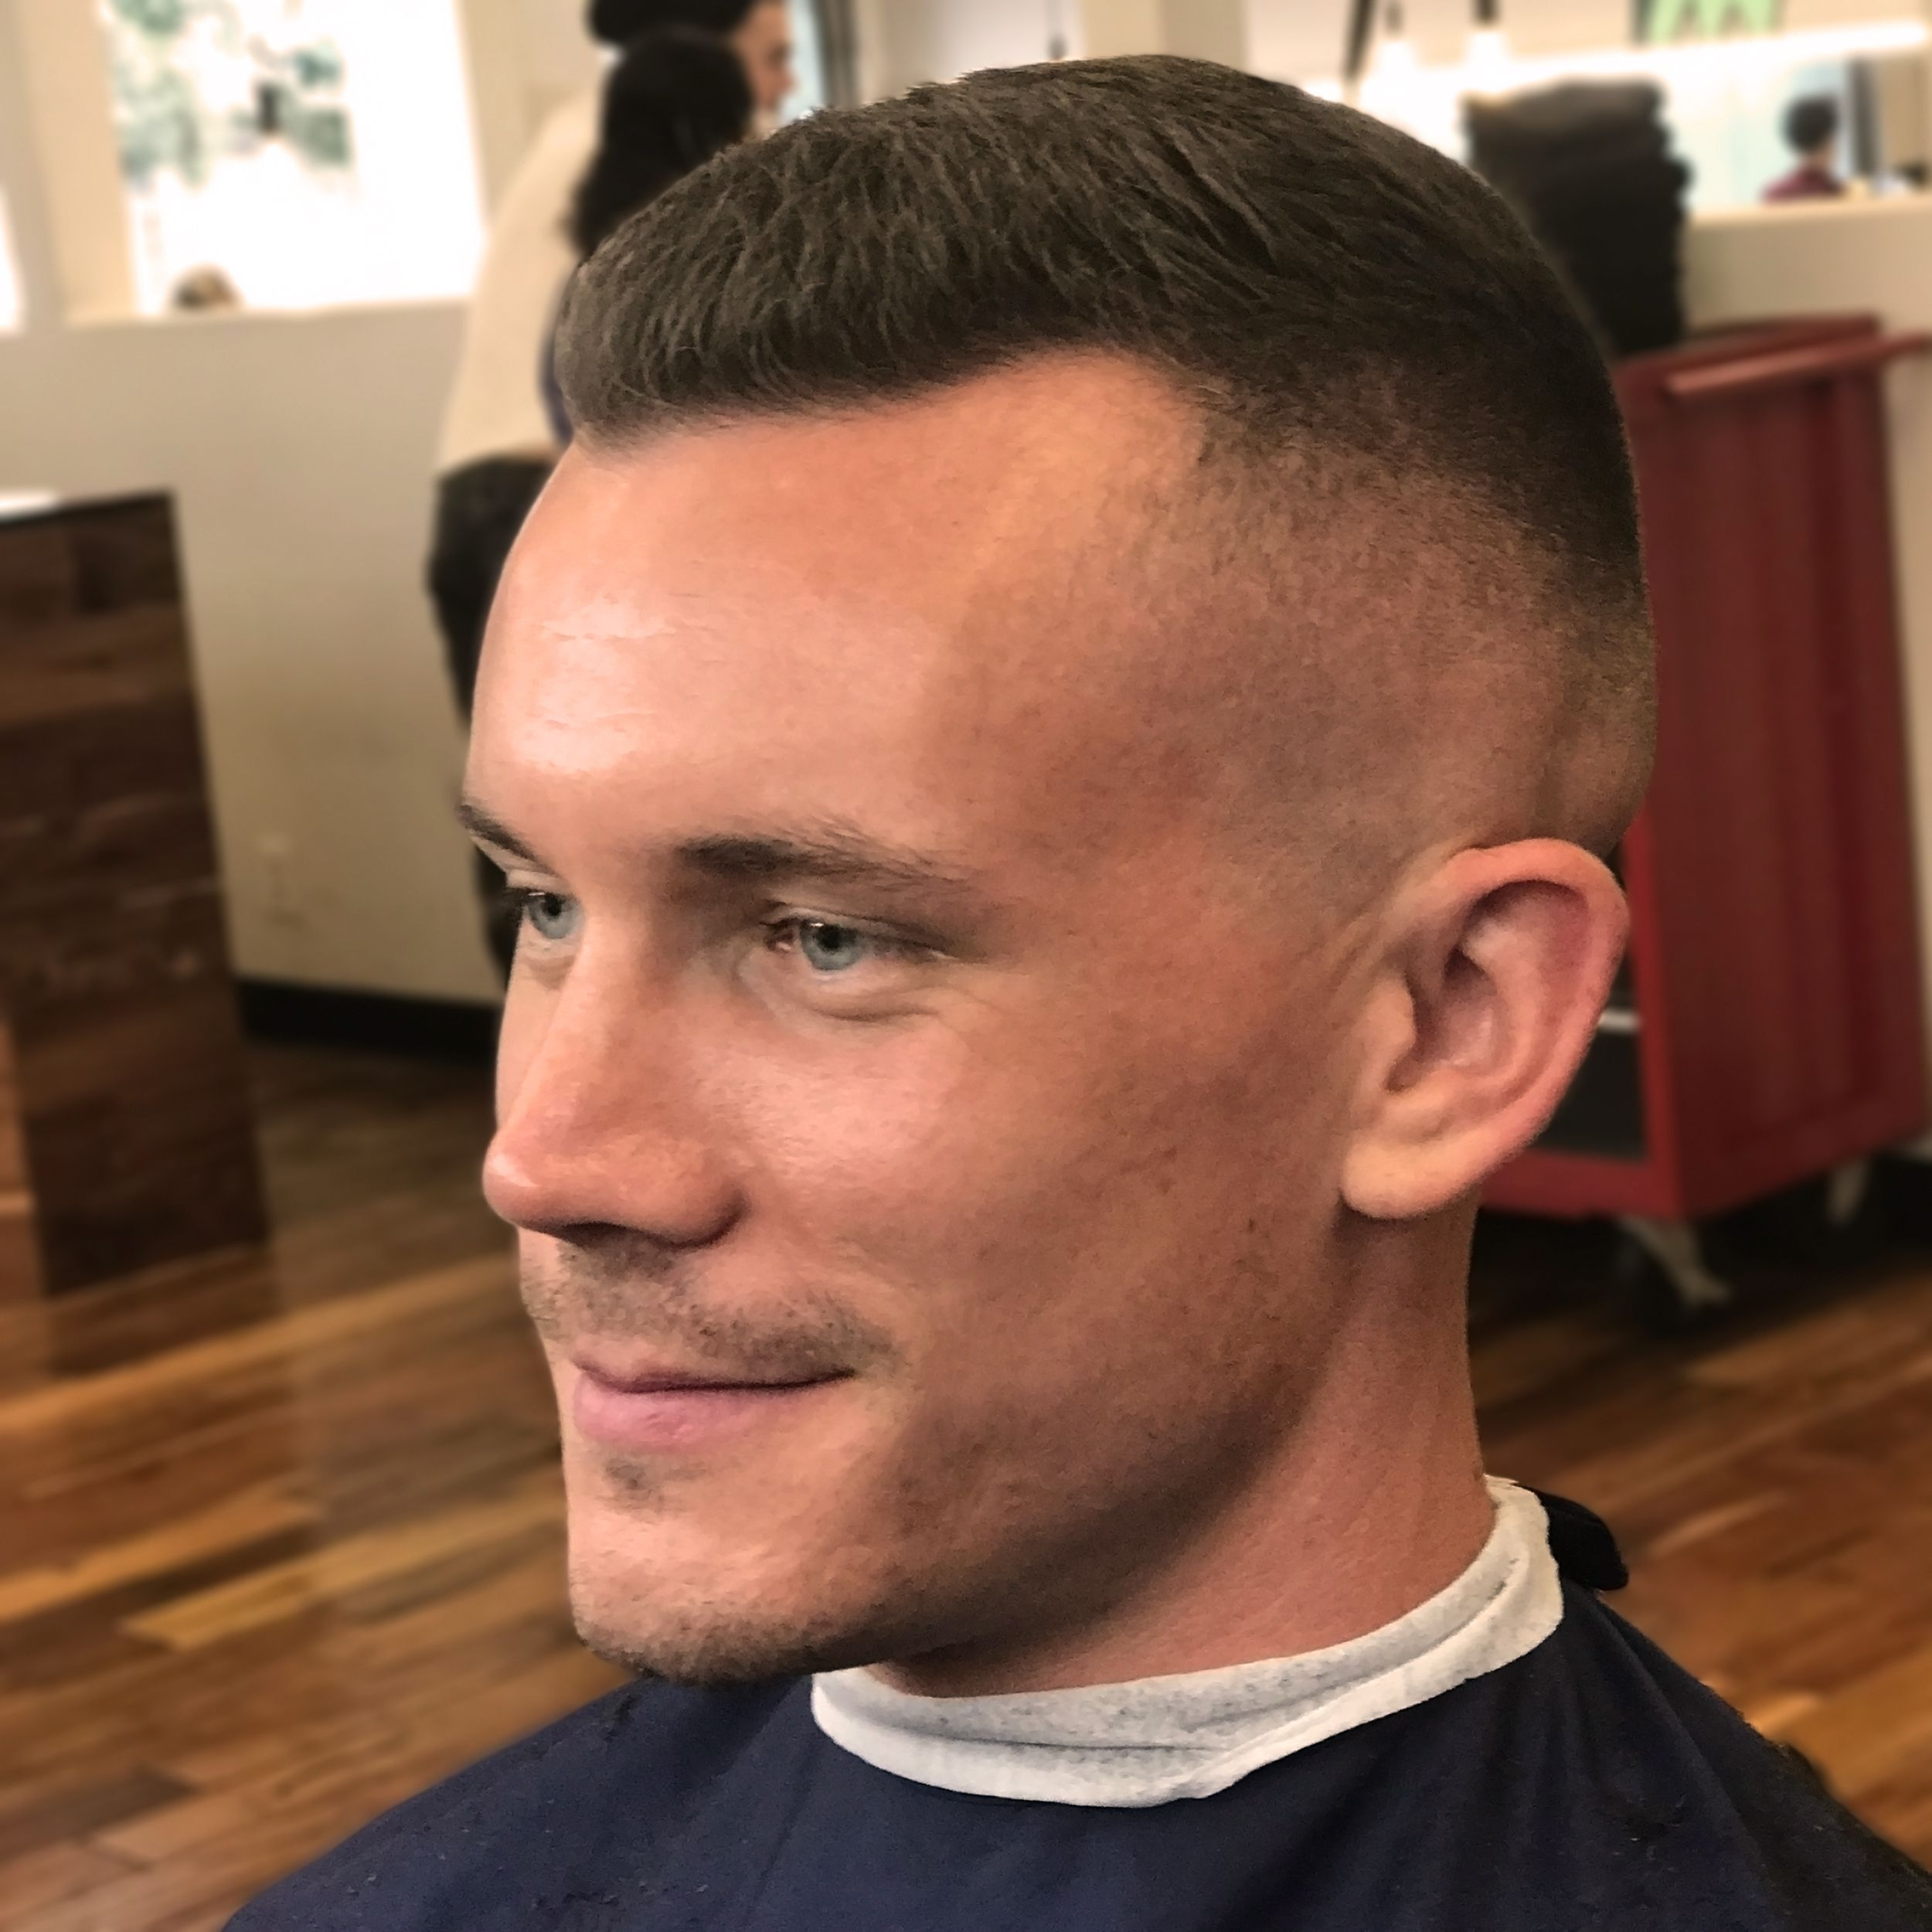 This Medium Skin Fade Was Done With A Razor About 1 3 The Way Up The Head And Fading Into About One Inch Of Length On Top O Medium Skin Fade Fade